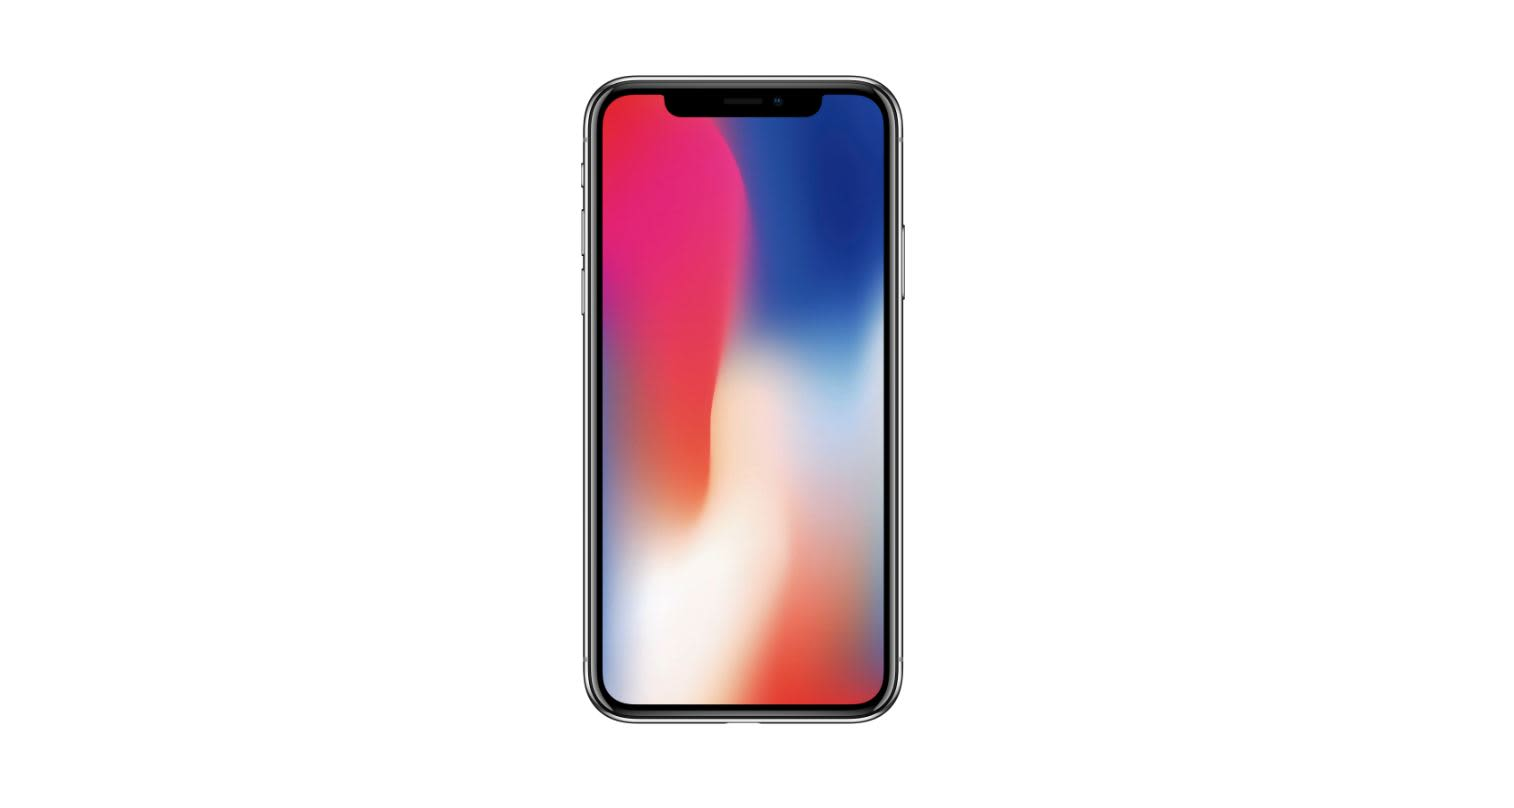 If there was no notch in iPhone X, it would be just a rectangle with rounded corners — it could be any phone.